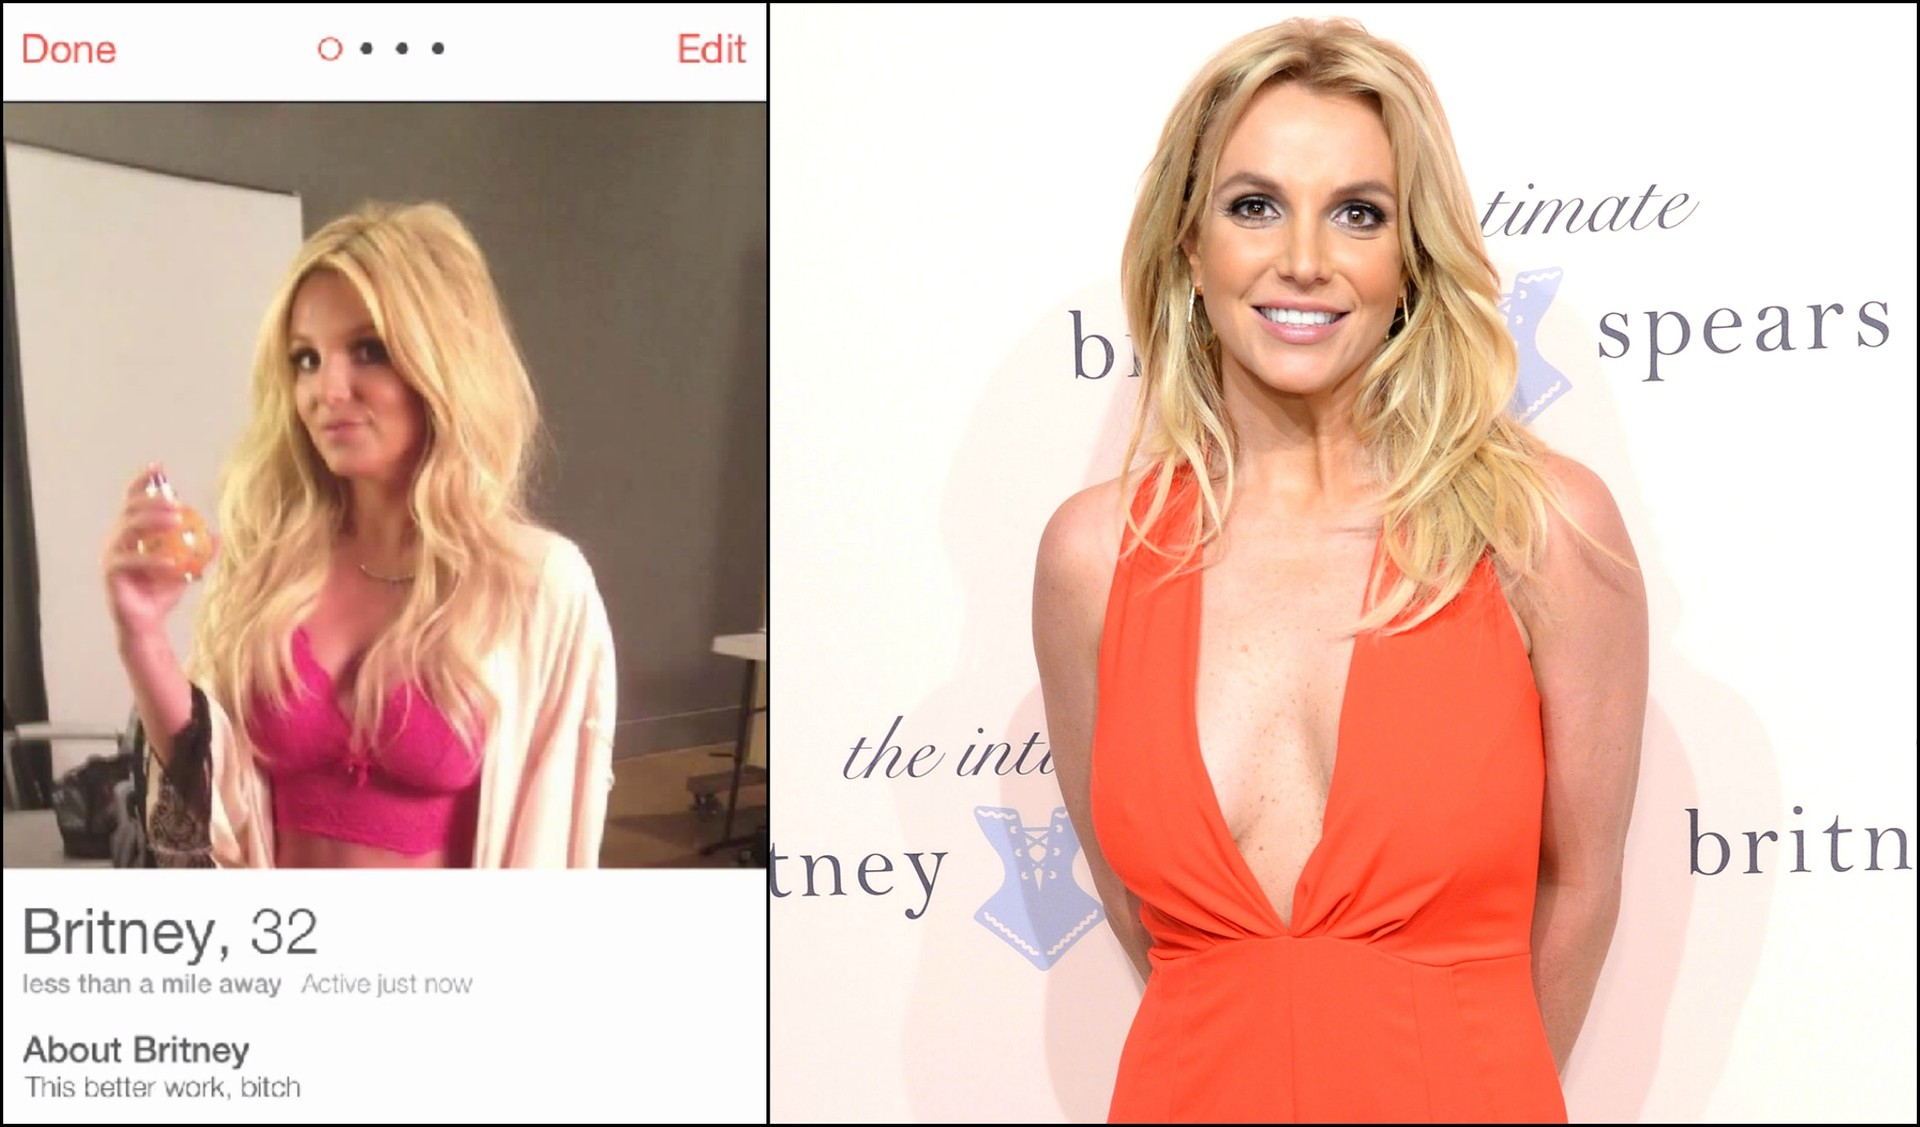 Britney Spears se inscreve no Tinder ao vivo no show do Jimmy Fallon - Mundo Nerd Info